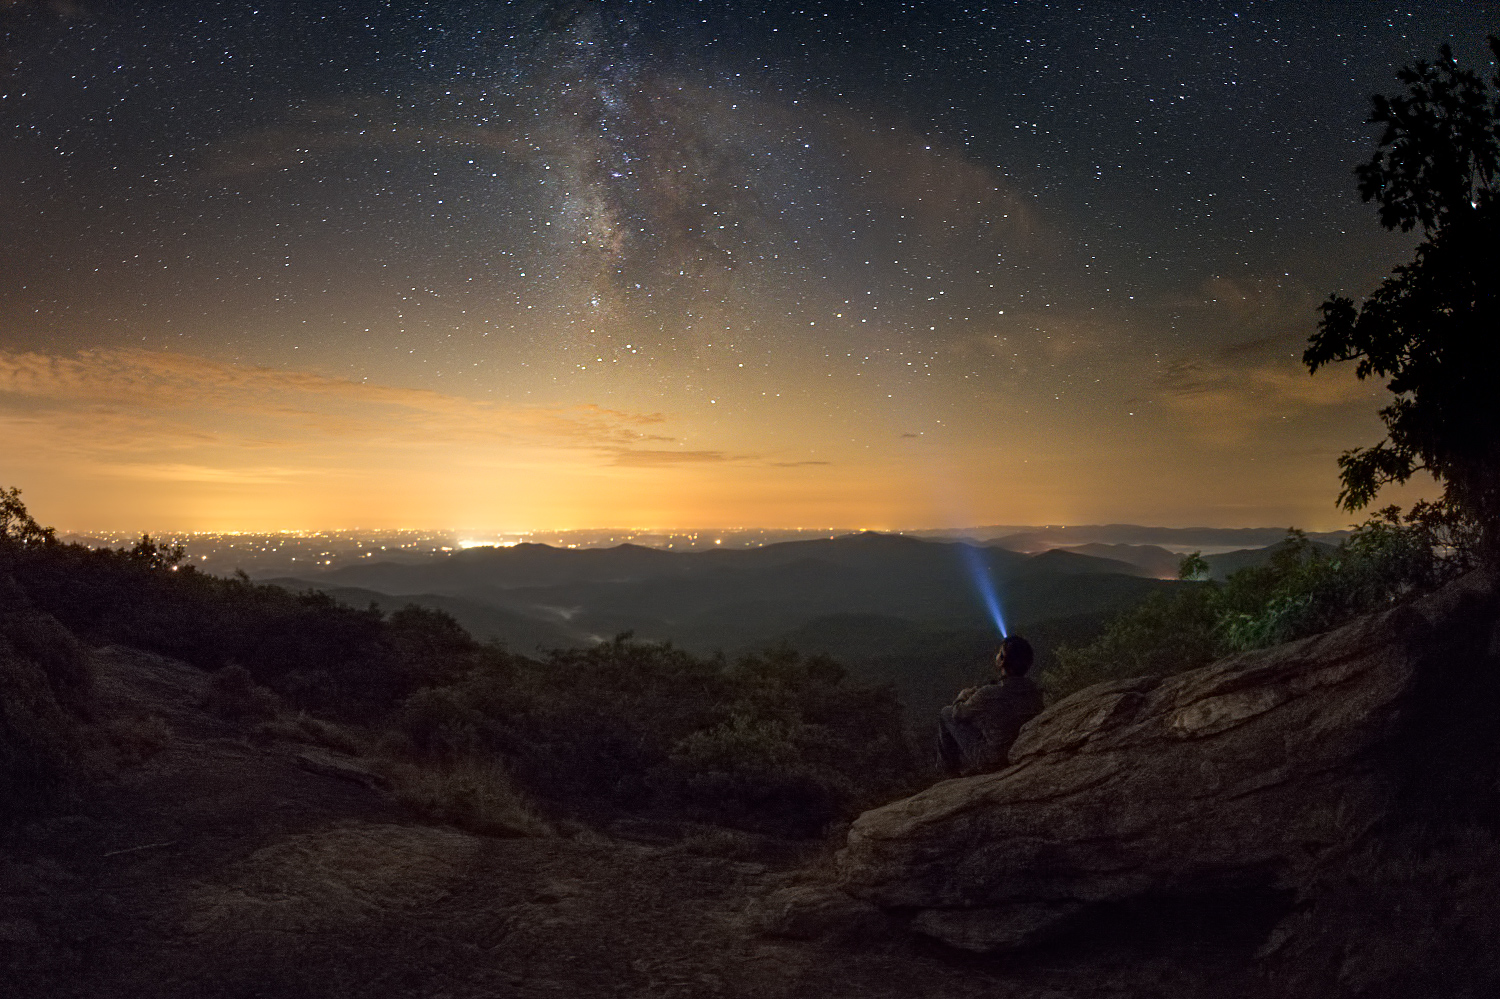 Thinking About The Milky Way - The Milky Way and it's galactic core from the summit of Blood Mountain, Georgia.